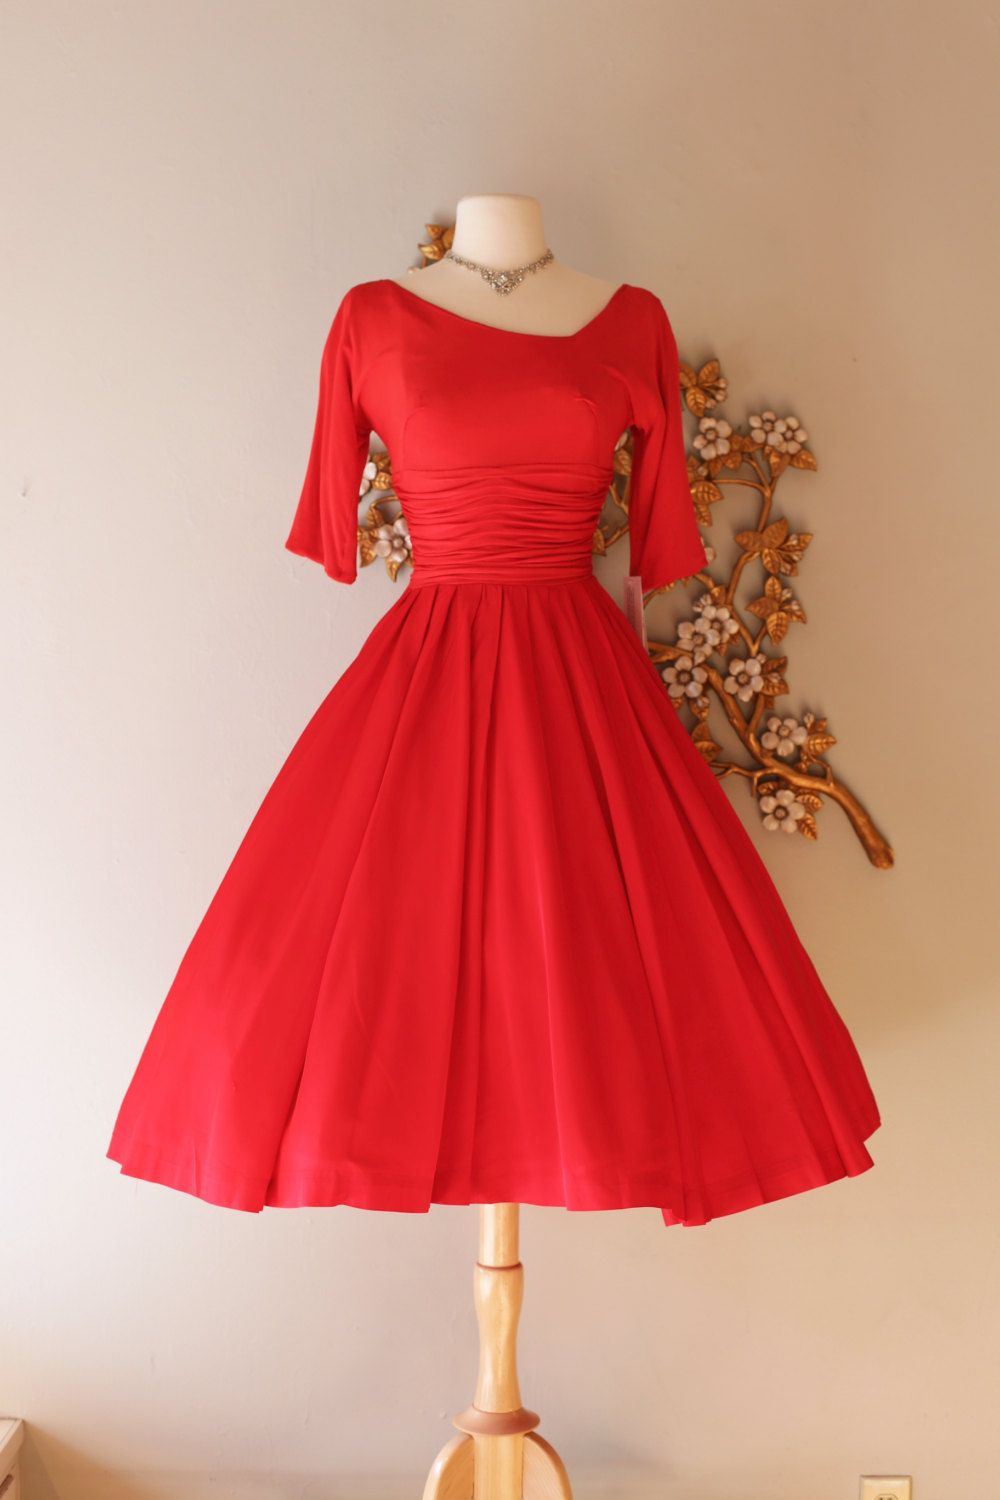 Vintage 1950s Cherry Red Cocktail Party Dress Vintage